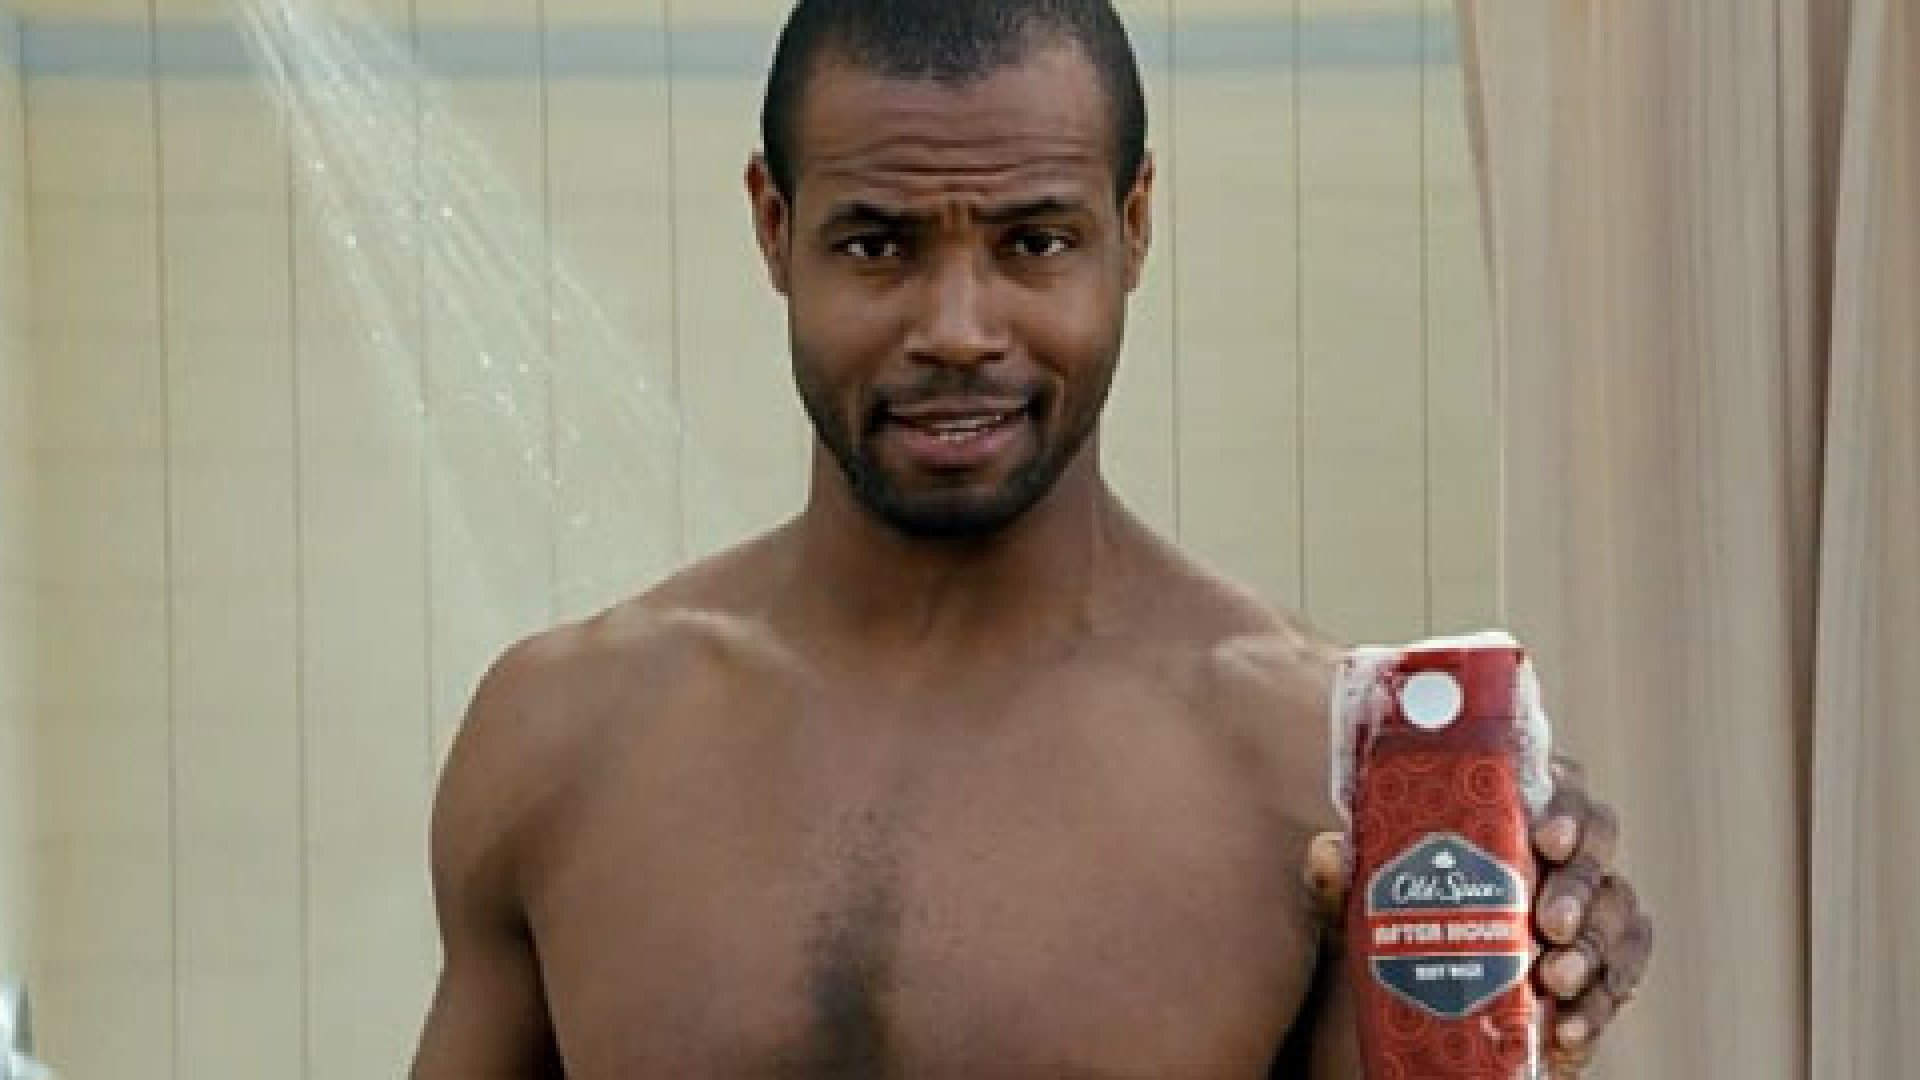 The Old Spice campaign was a viral success--but it wasn't cheap.